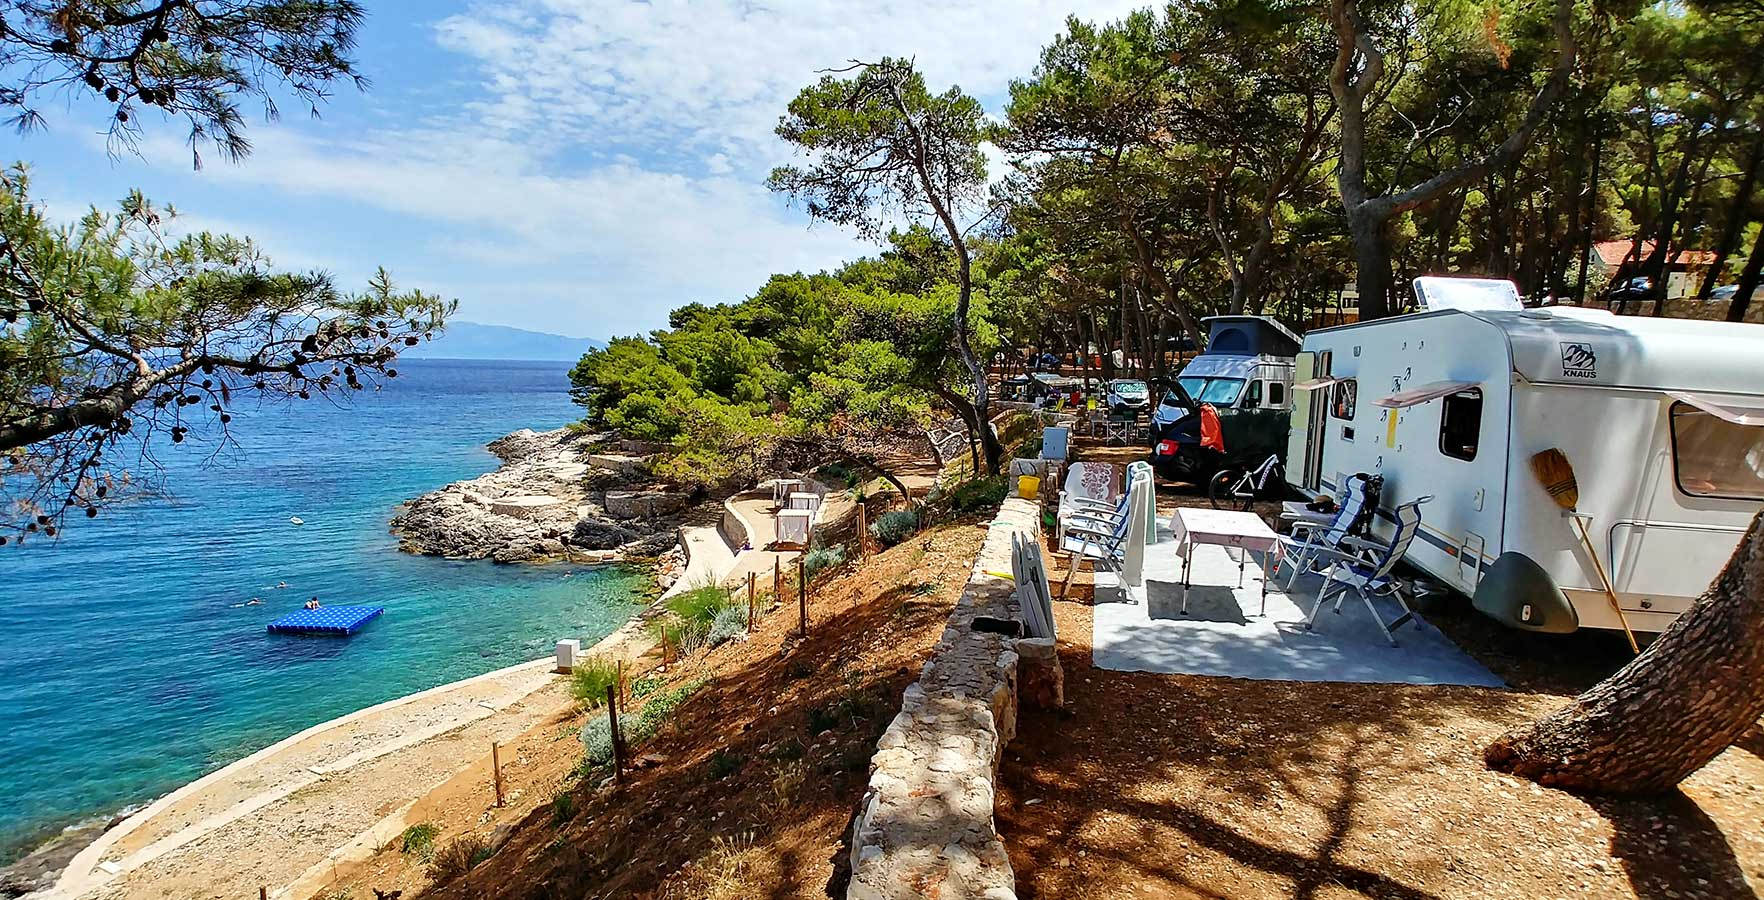 Camping on Hvar Camp Holiday